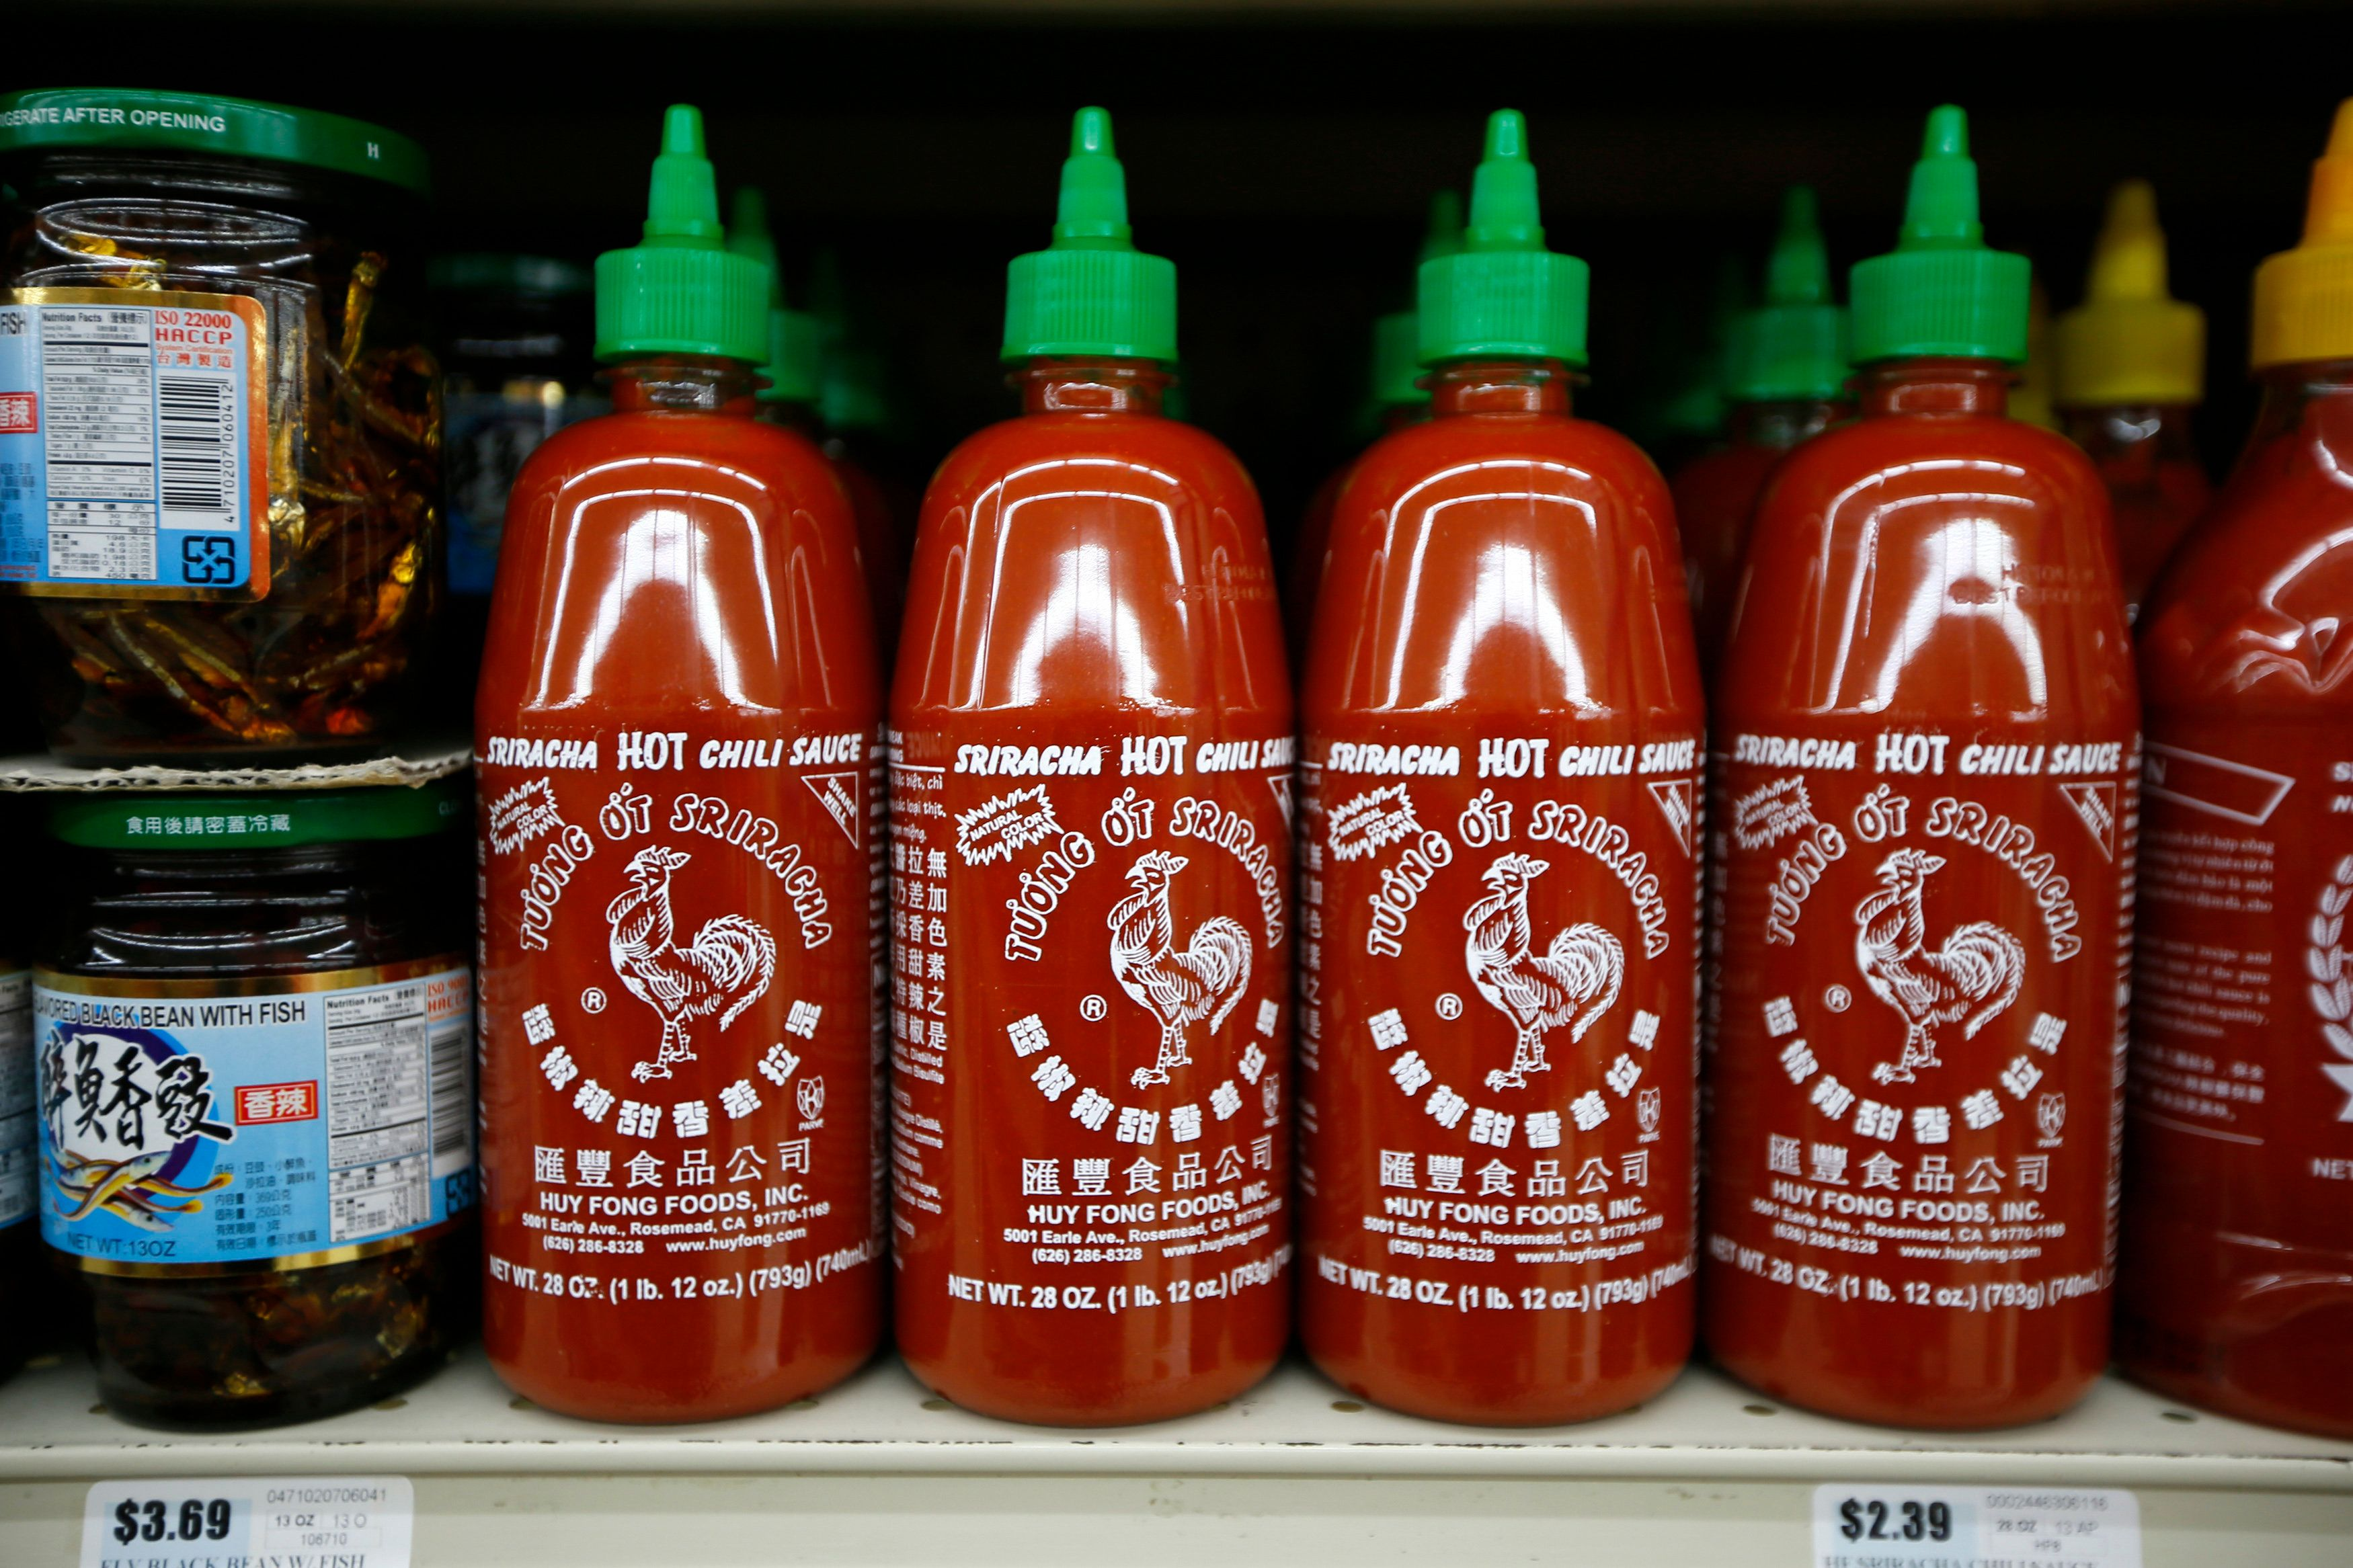 Bottles of Sriracha hot chili sauce, made by Huy Fong Foods, are seen on a supermarket shelf in San Gabriel, California October 30, 2013.  REUTERS/Lucy Nicholson (UNITED STATES - Tags: BUSINESS FOOD)